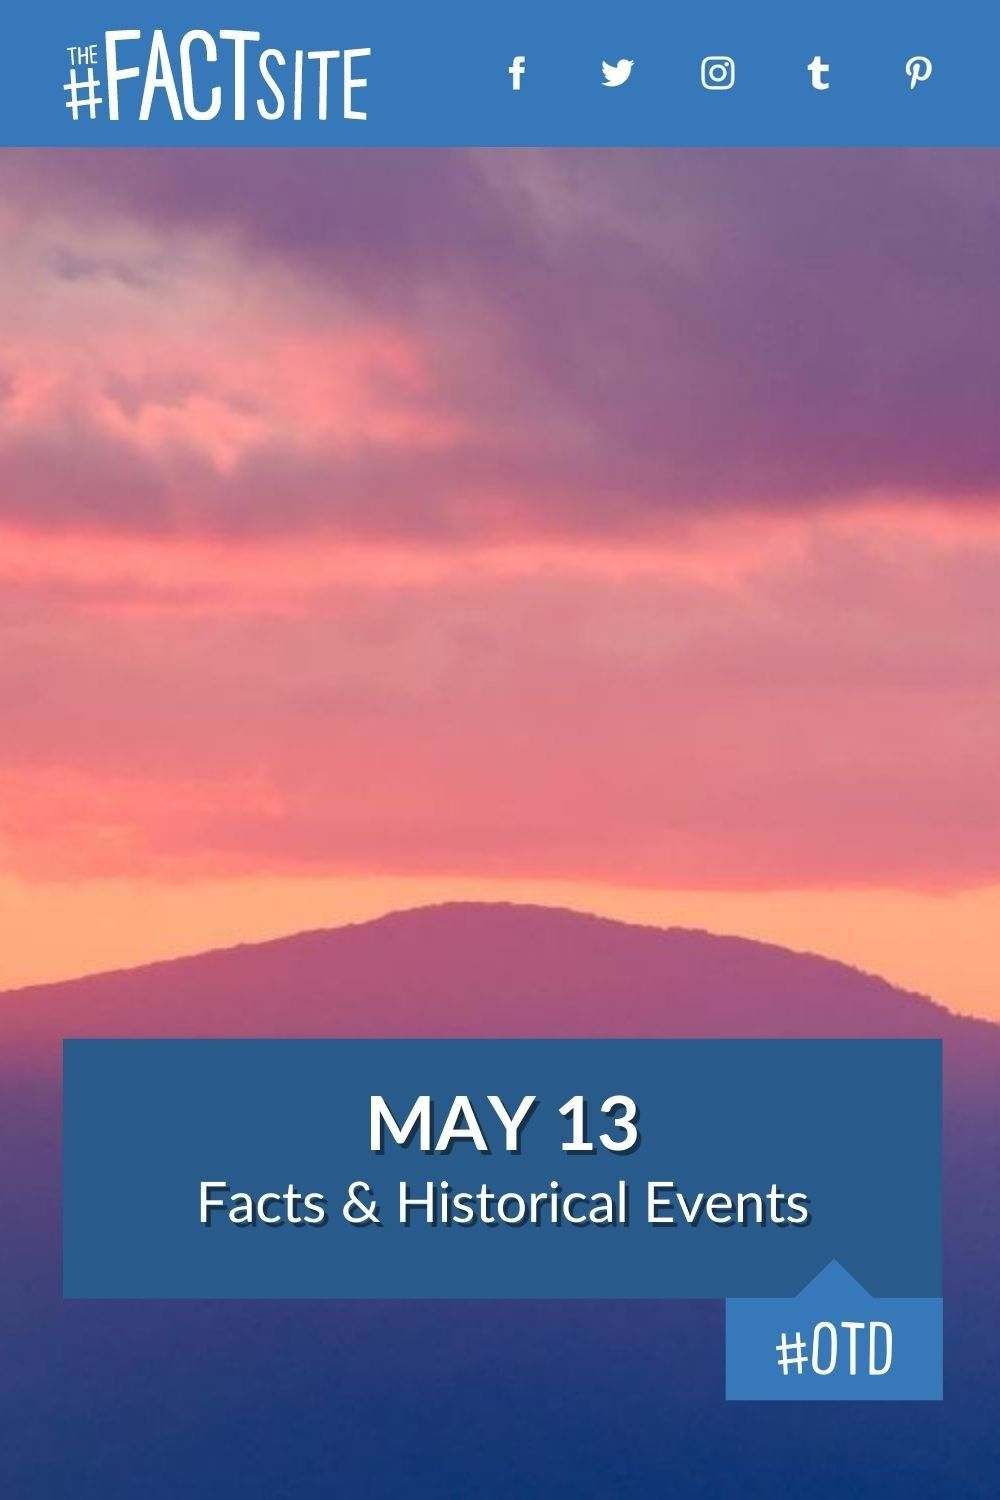 Facts & Historic Events That Happened on May 13